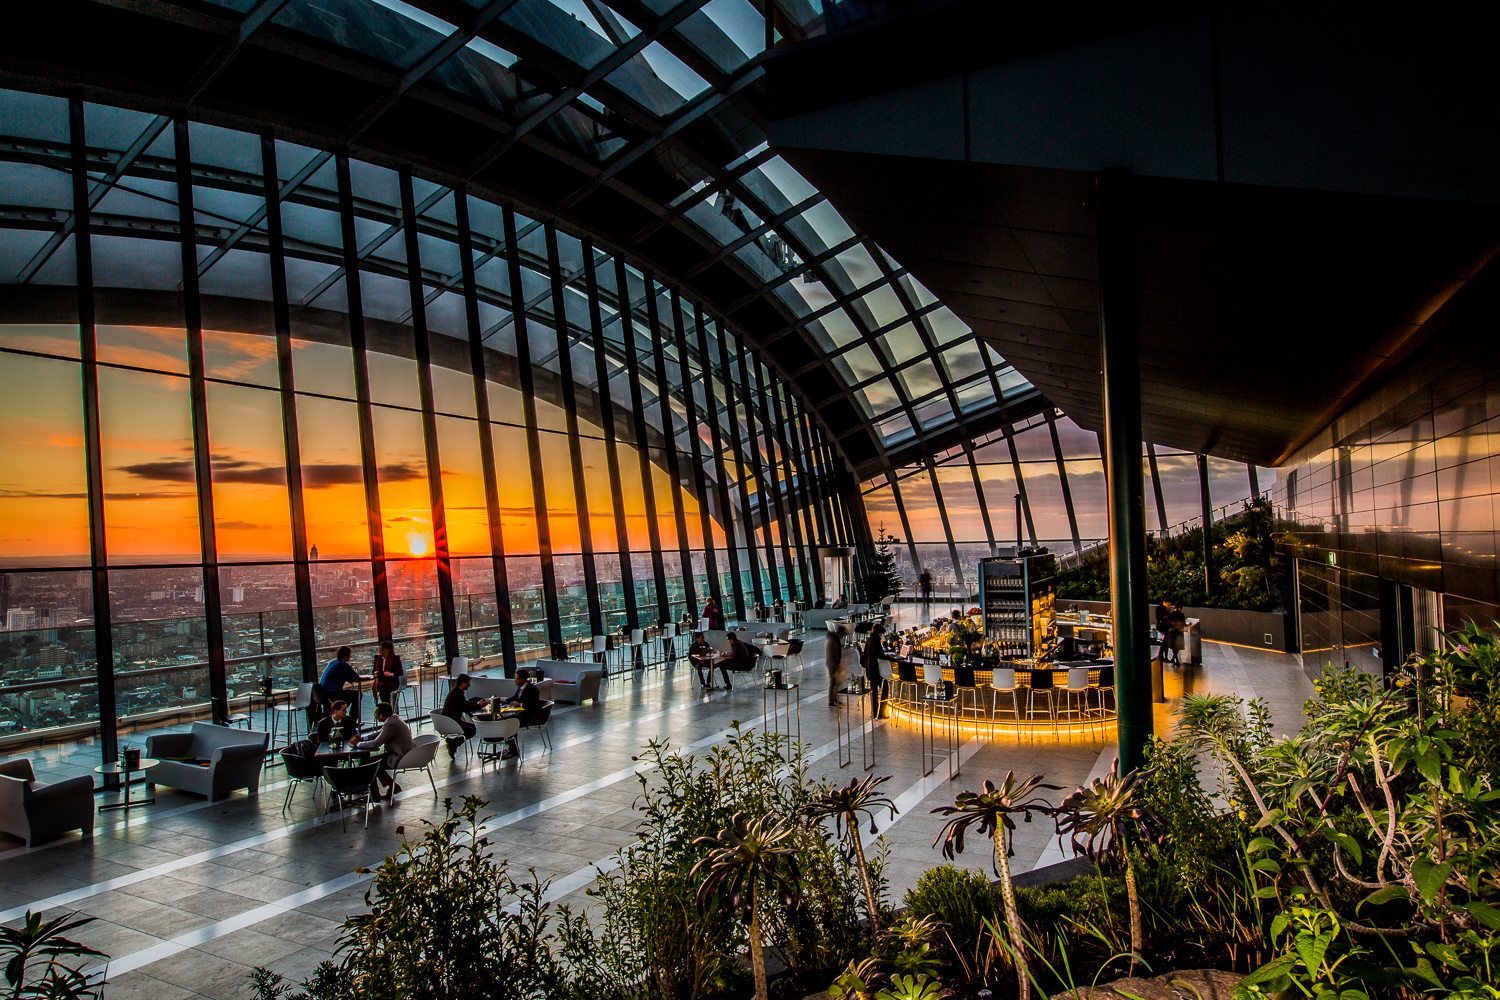 Sky Garden's Moët & Chandon Winter Bar